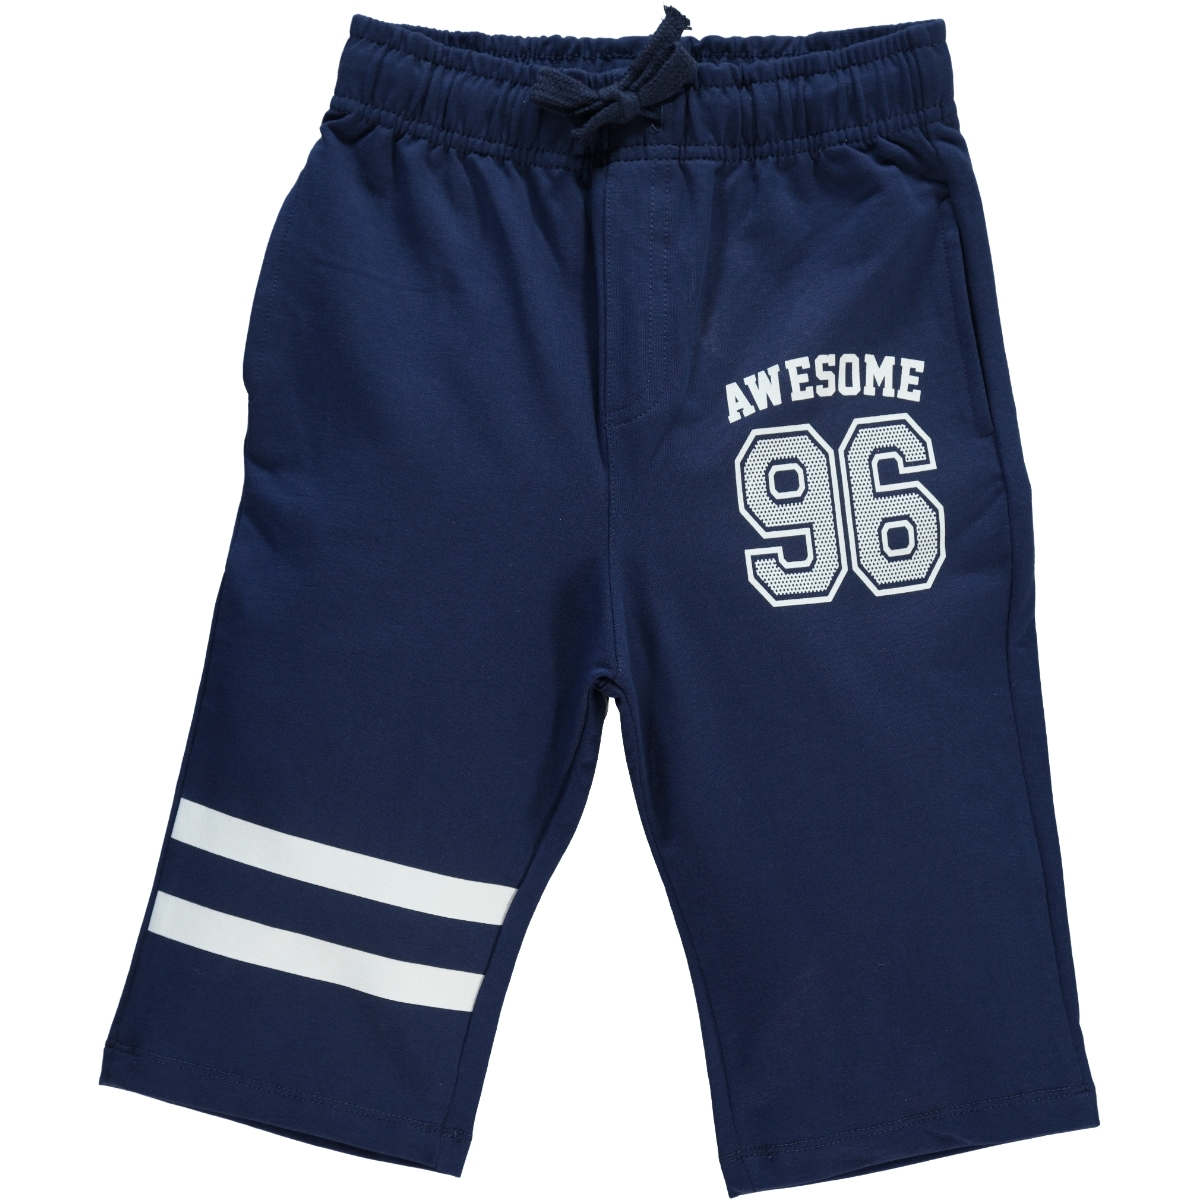 Cvl Age 6-9 Boy Navy Blue Capri